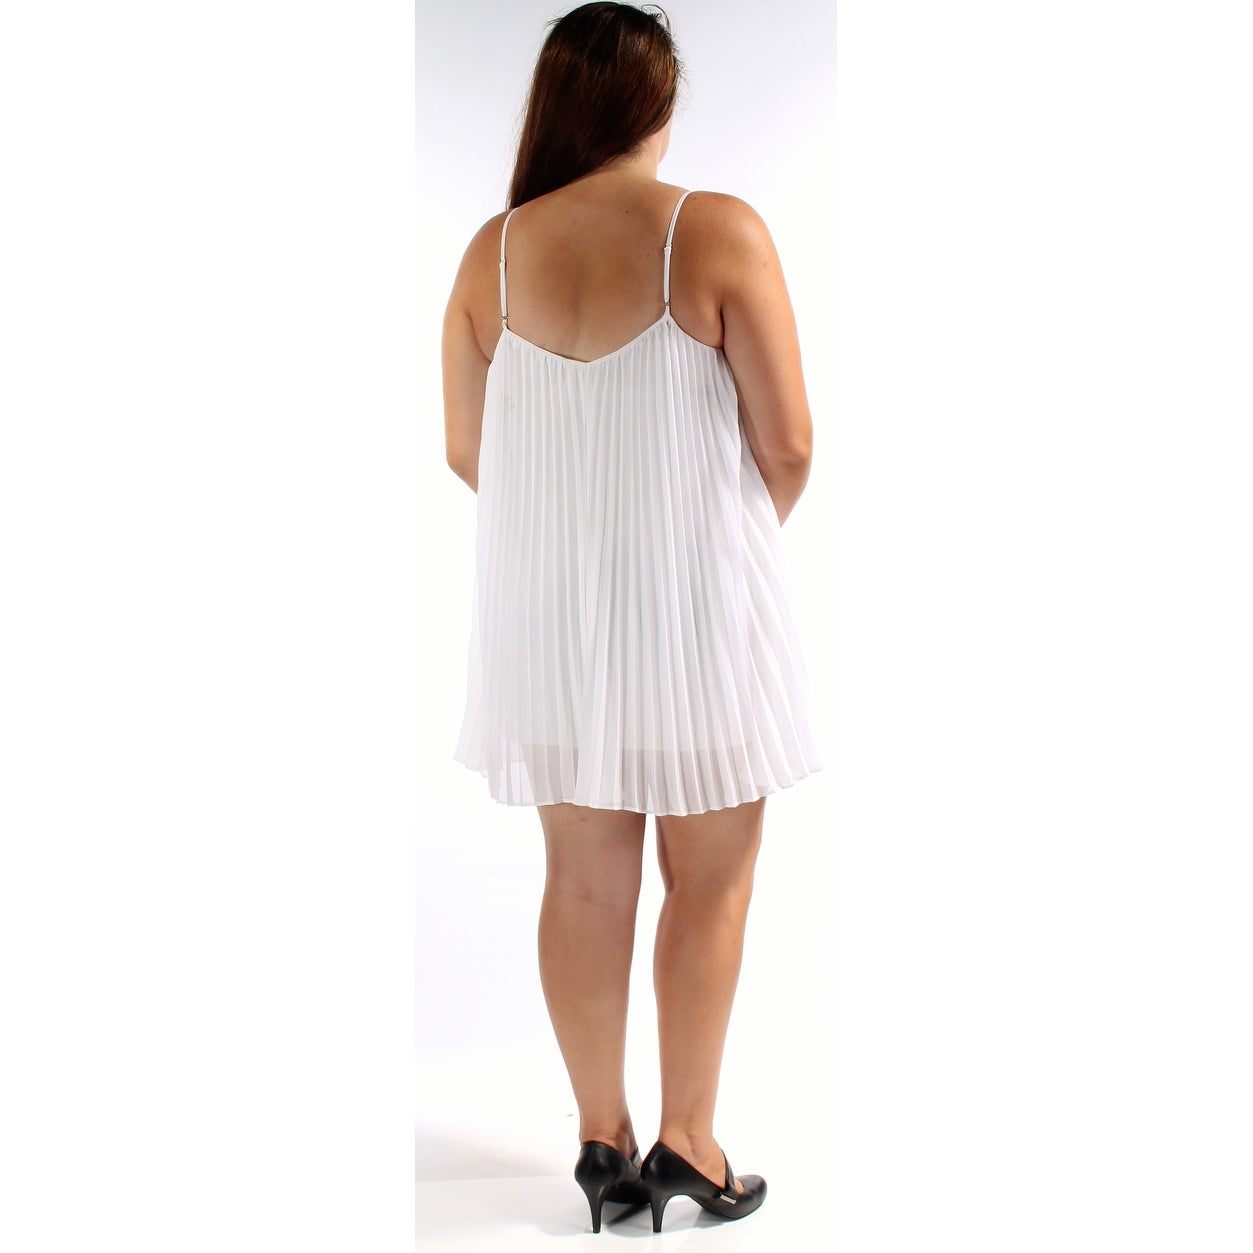 9cf89ade61b Shop GUESS Womens Ivory Spaghetti Strap V Neck Above The Knee Knife Pleated  Evening Dress Size: XL - Free Shipping On Orders Over $45 - Overstock -  21308143